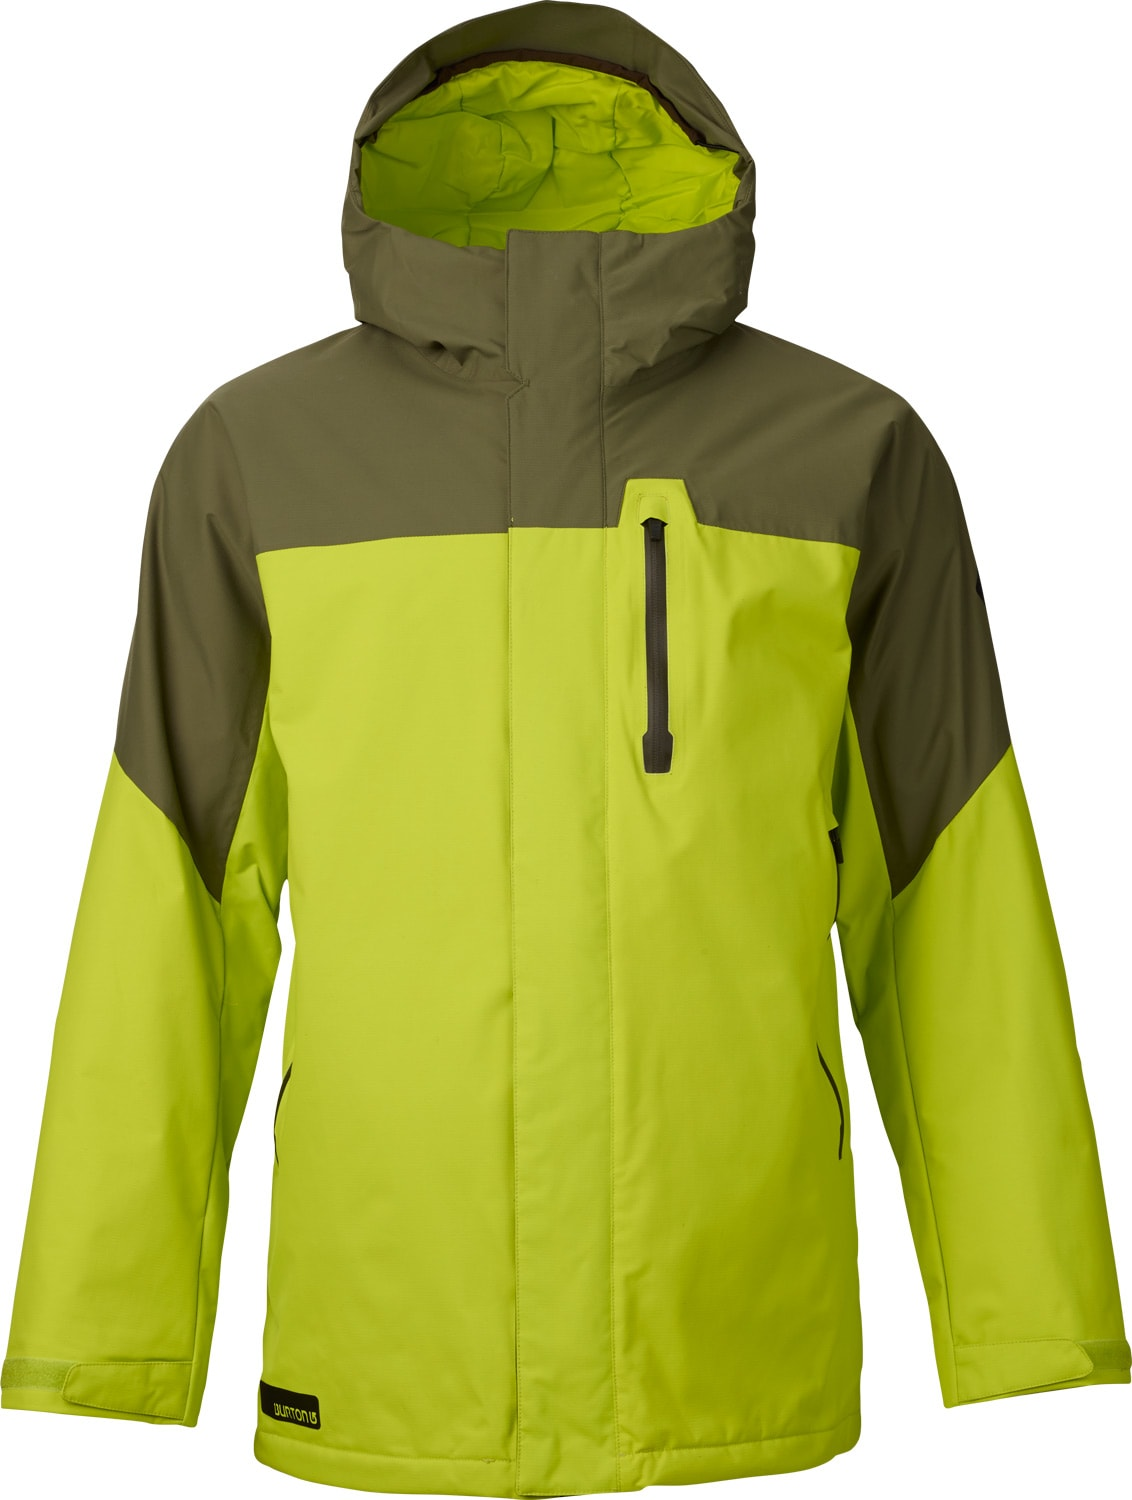 Shop for Snowboard Jackets at REI - FREE SHIPPING With $50 minimum purchase. Top quality, great selection and expert advice you can trust. % Satisfaction Guarantee.